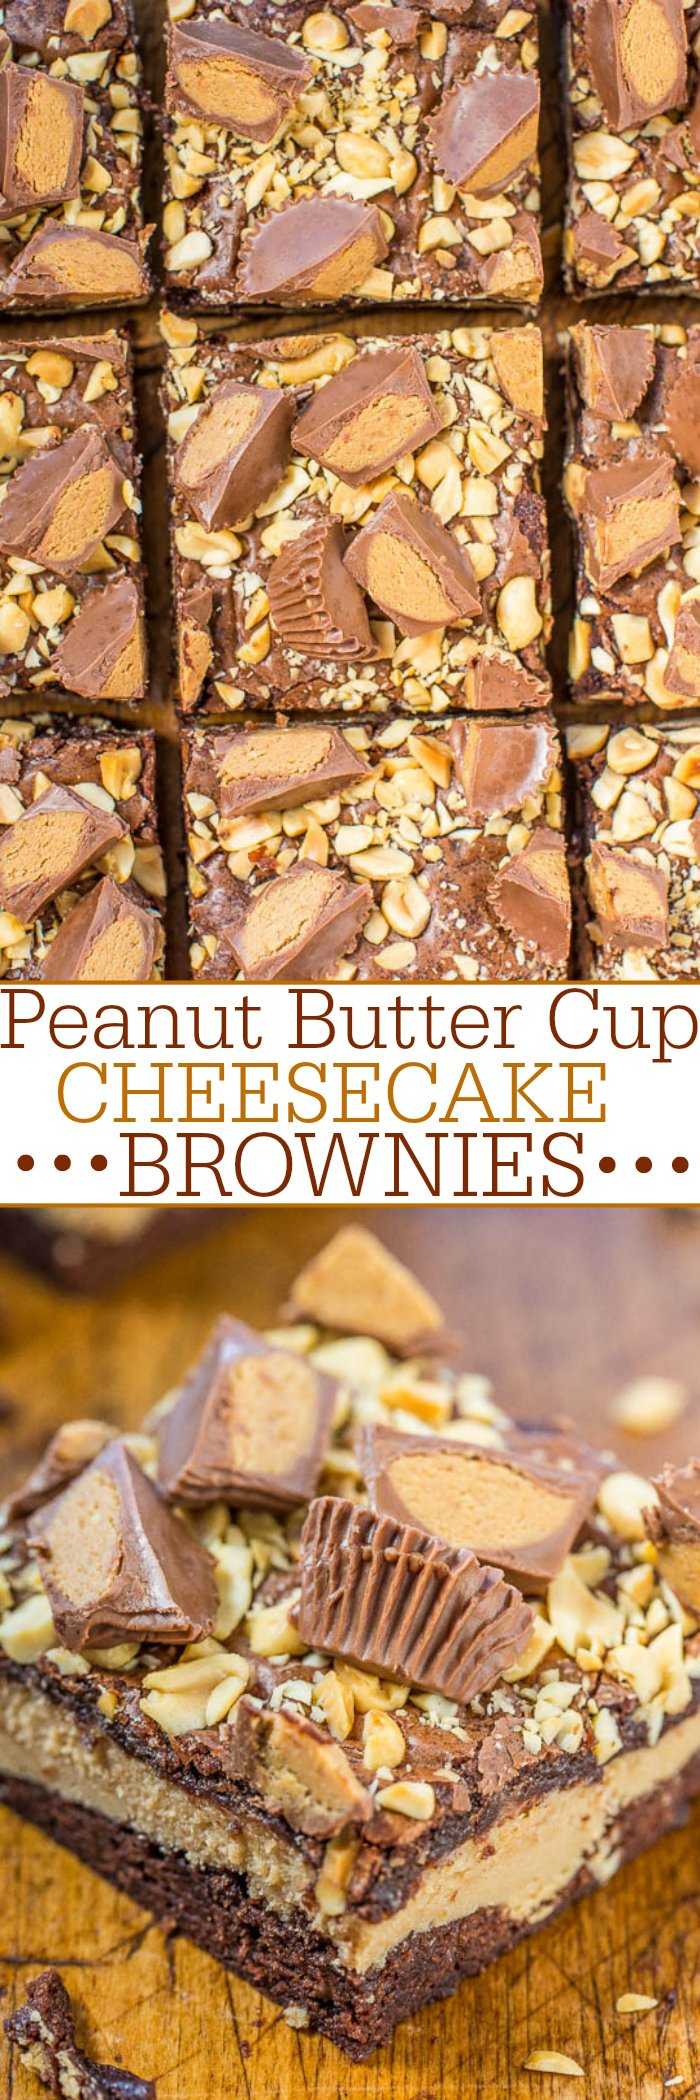 Peanut Butter Cup Cheesecake Brownies - Fudgy brownies with a layer of peanut butter cheesecake and topped with peanuts and peanut butter cups!! Rich, decadent, and amazing! A must-make for all peanut butter lovers!!